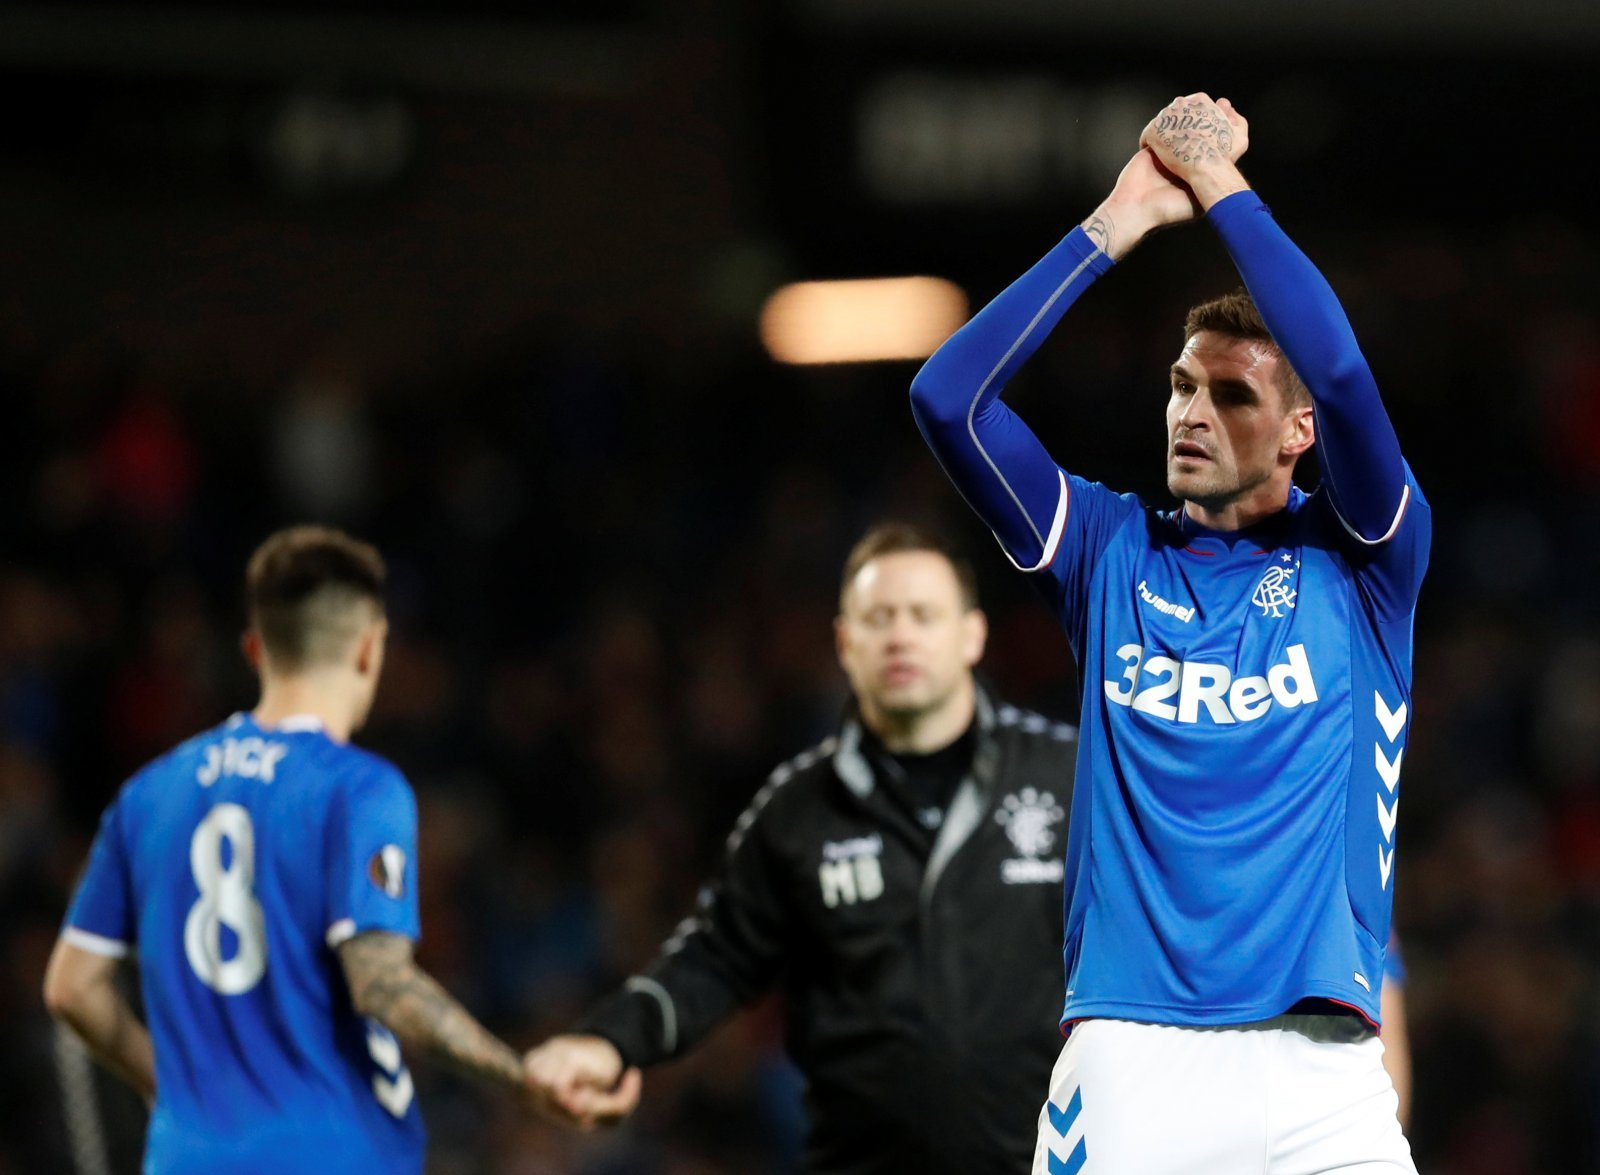 Rangers: Fans react to the departure of Kyle Lafferty on Twitter